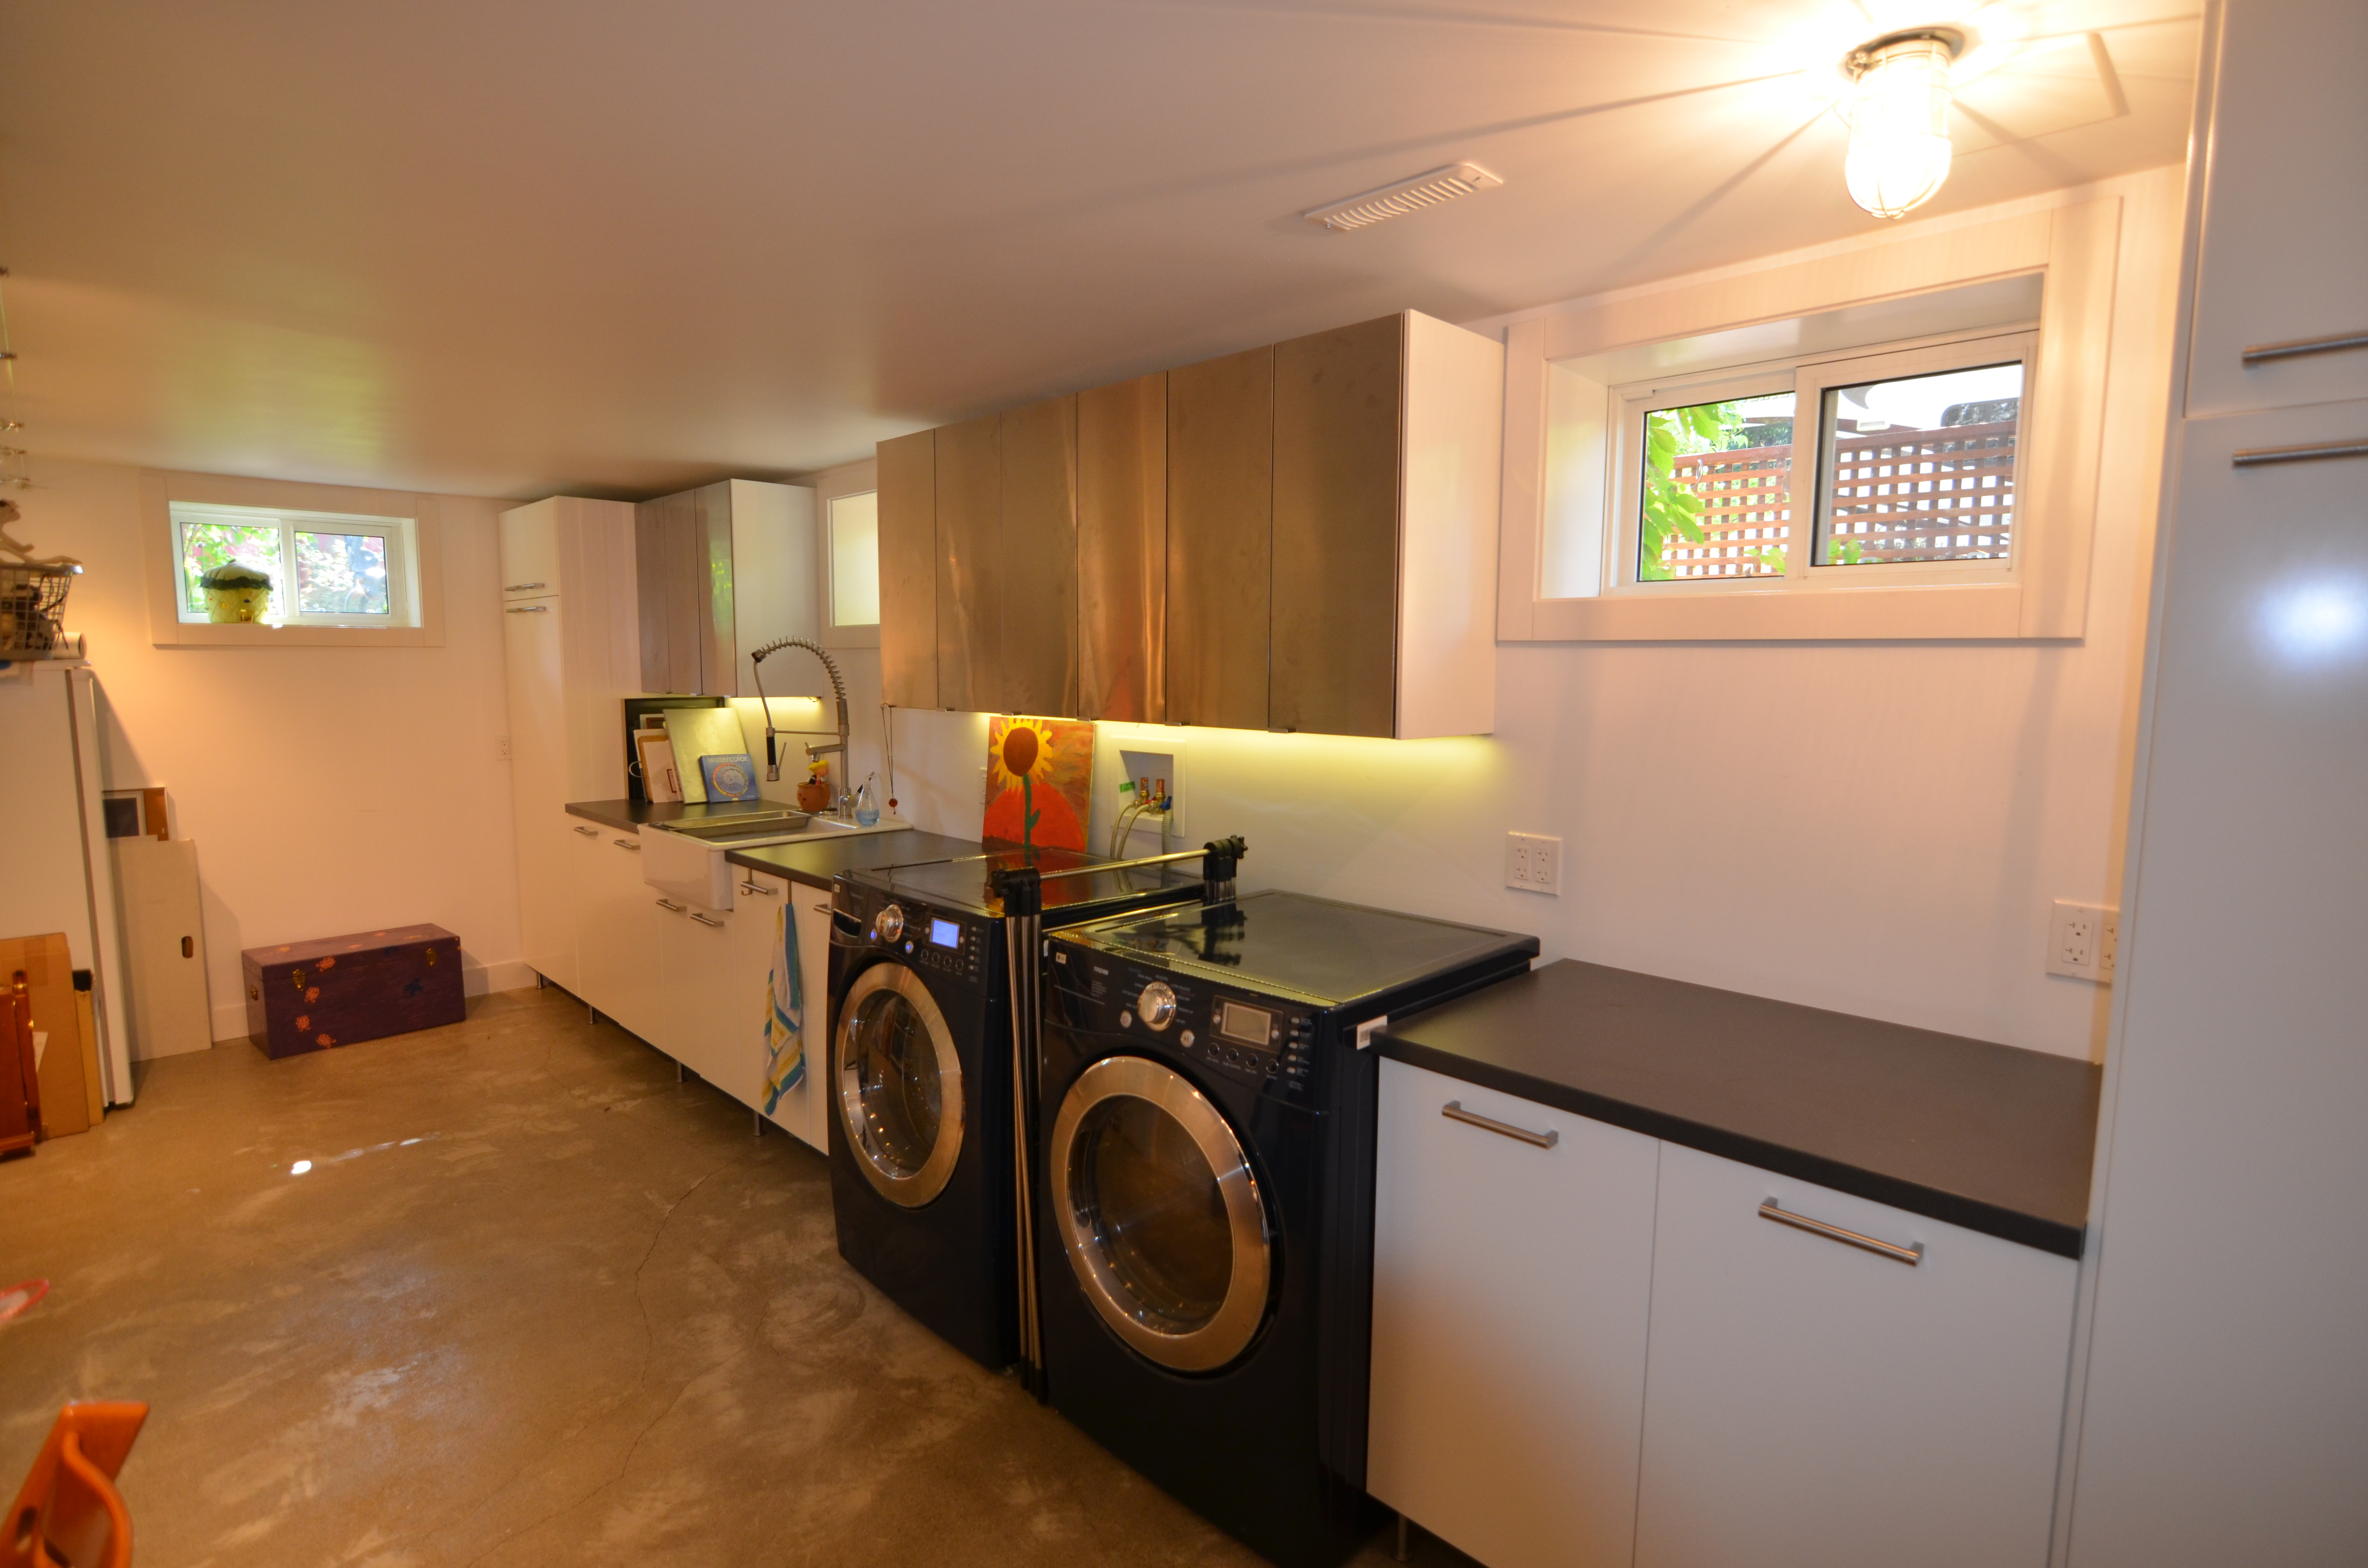 Laundry rooms too